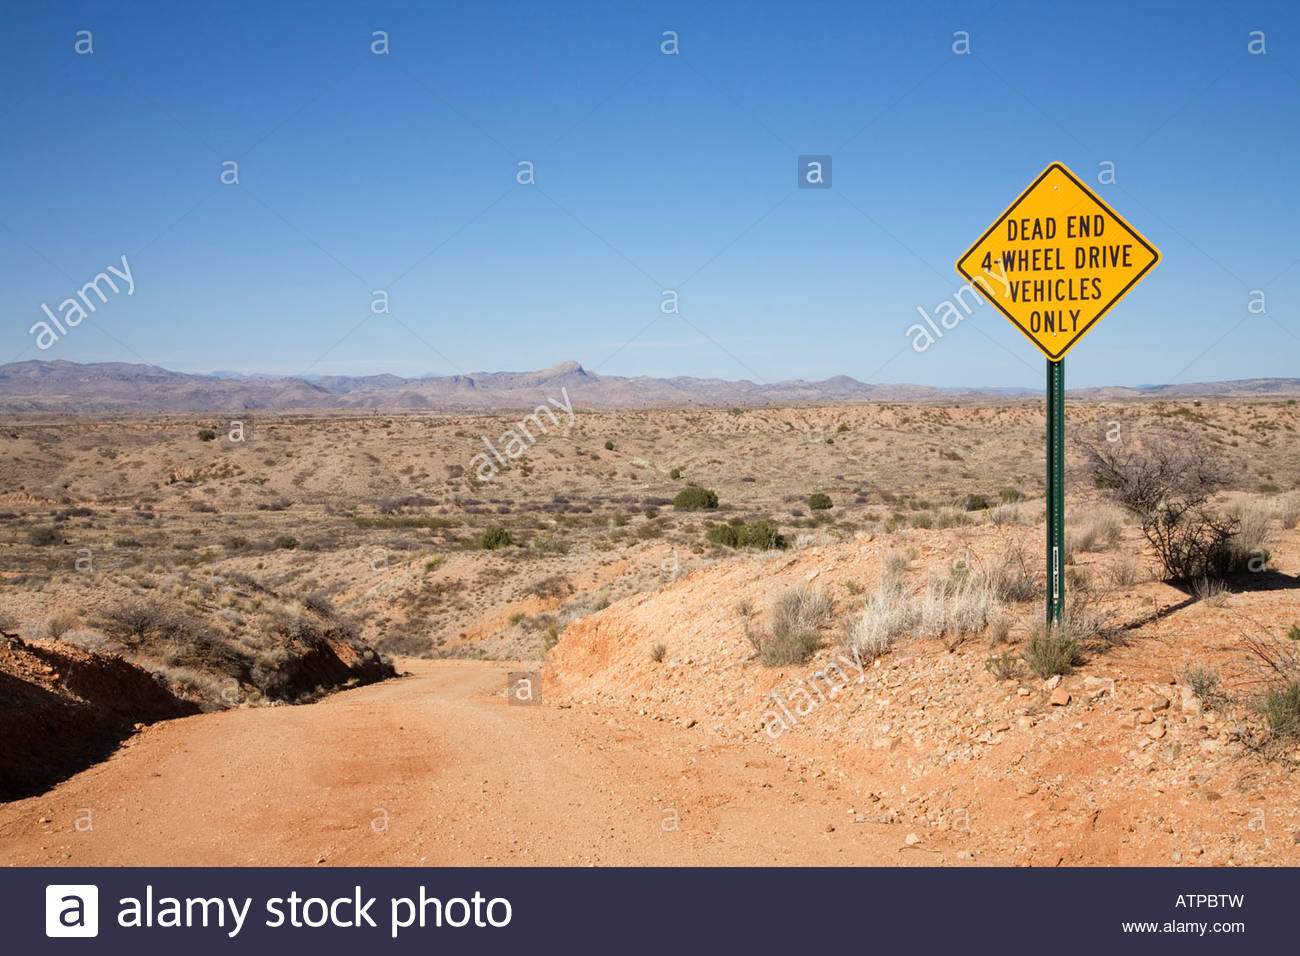 Highway Sign Dead End 4 Wheel Drive Only - Stock Image